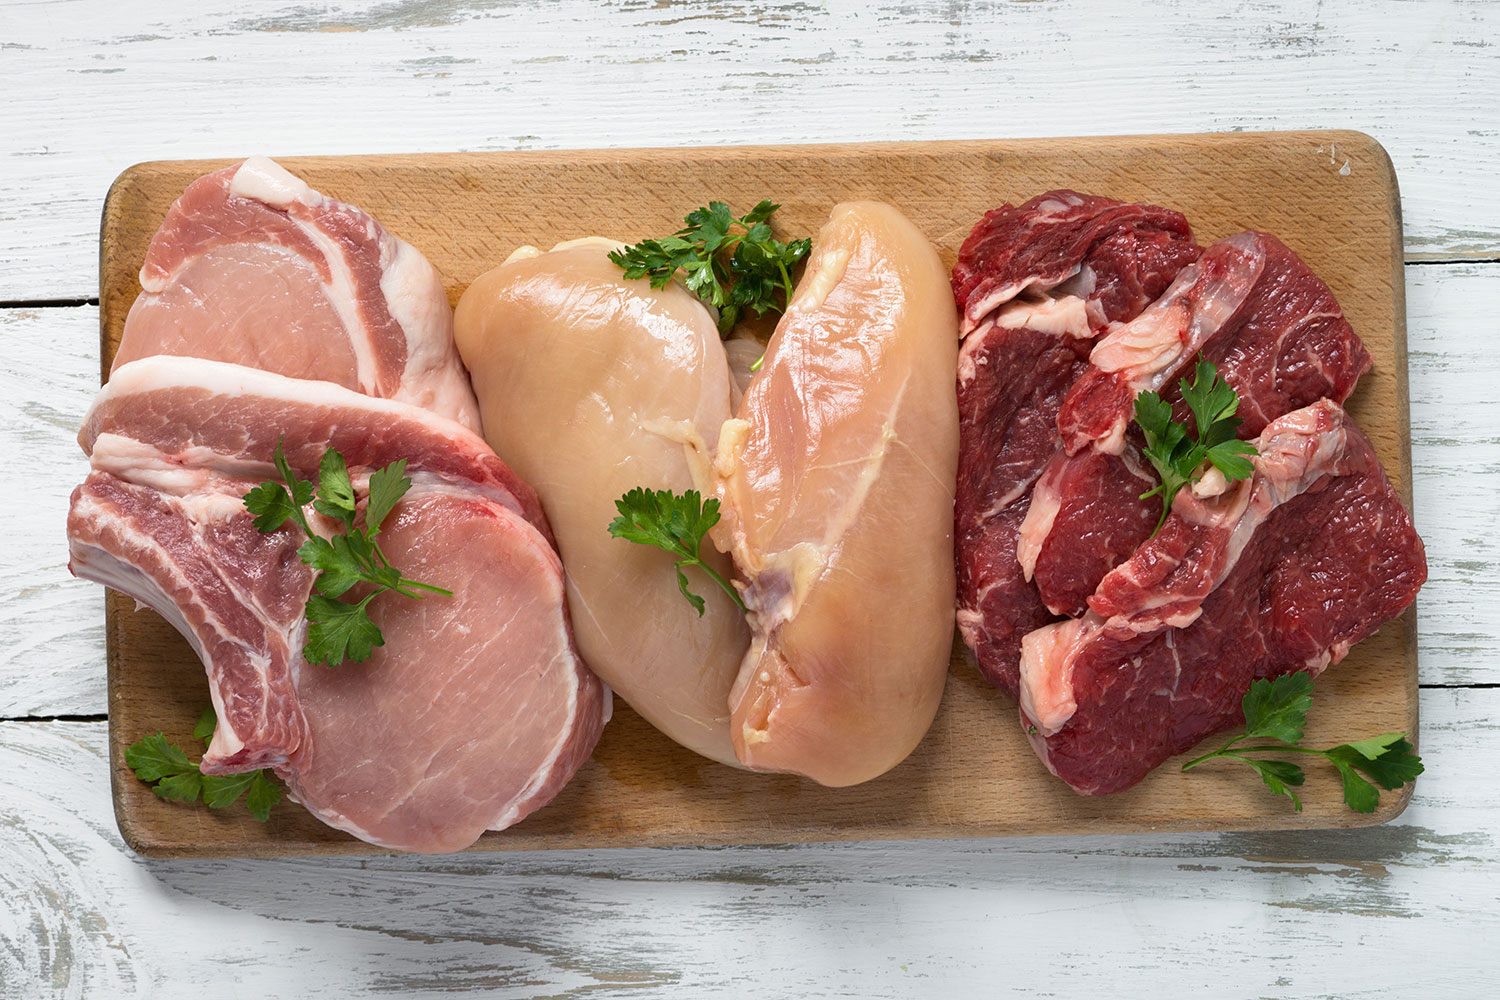 Meat - source of protein